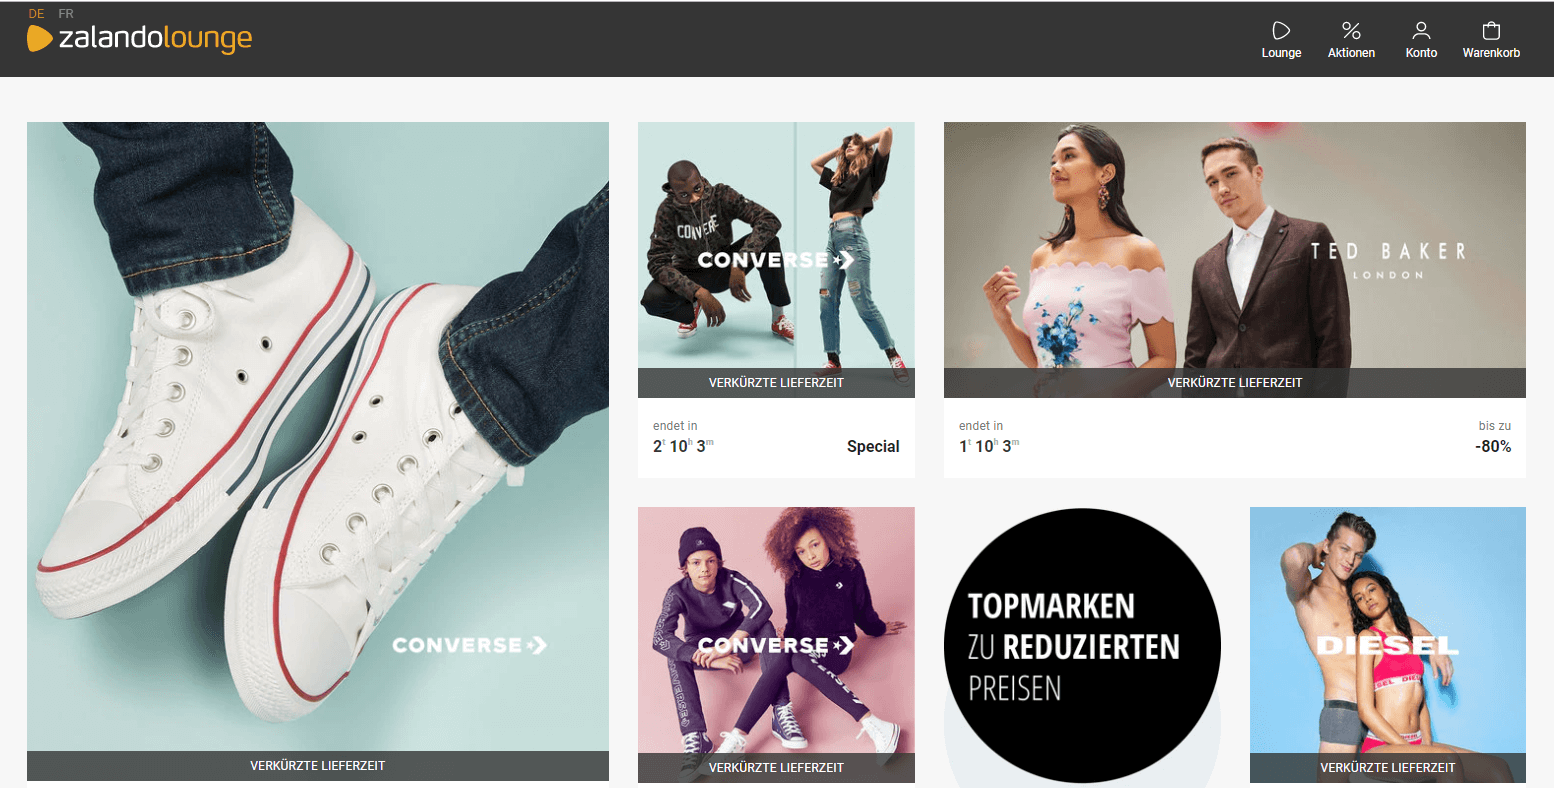 Top Brands Zalando Lounge